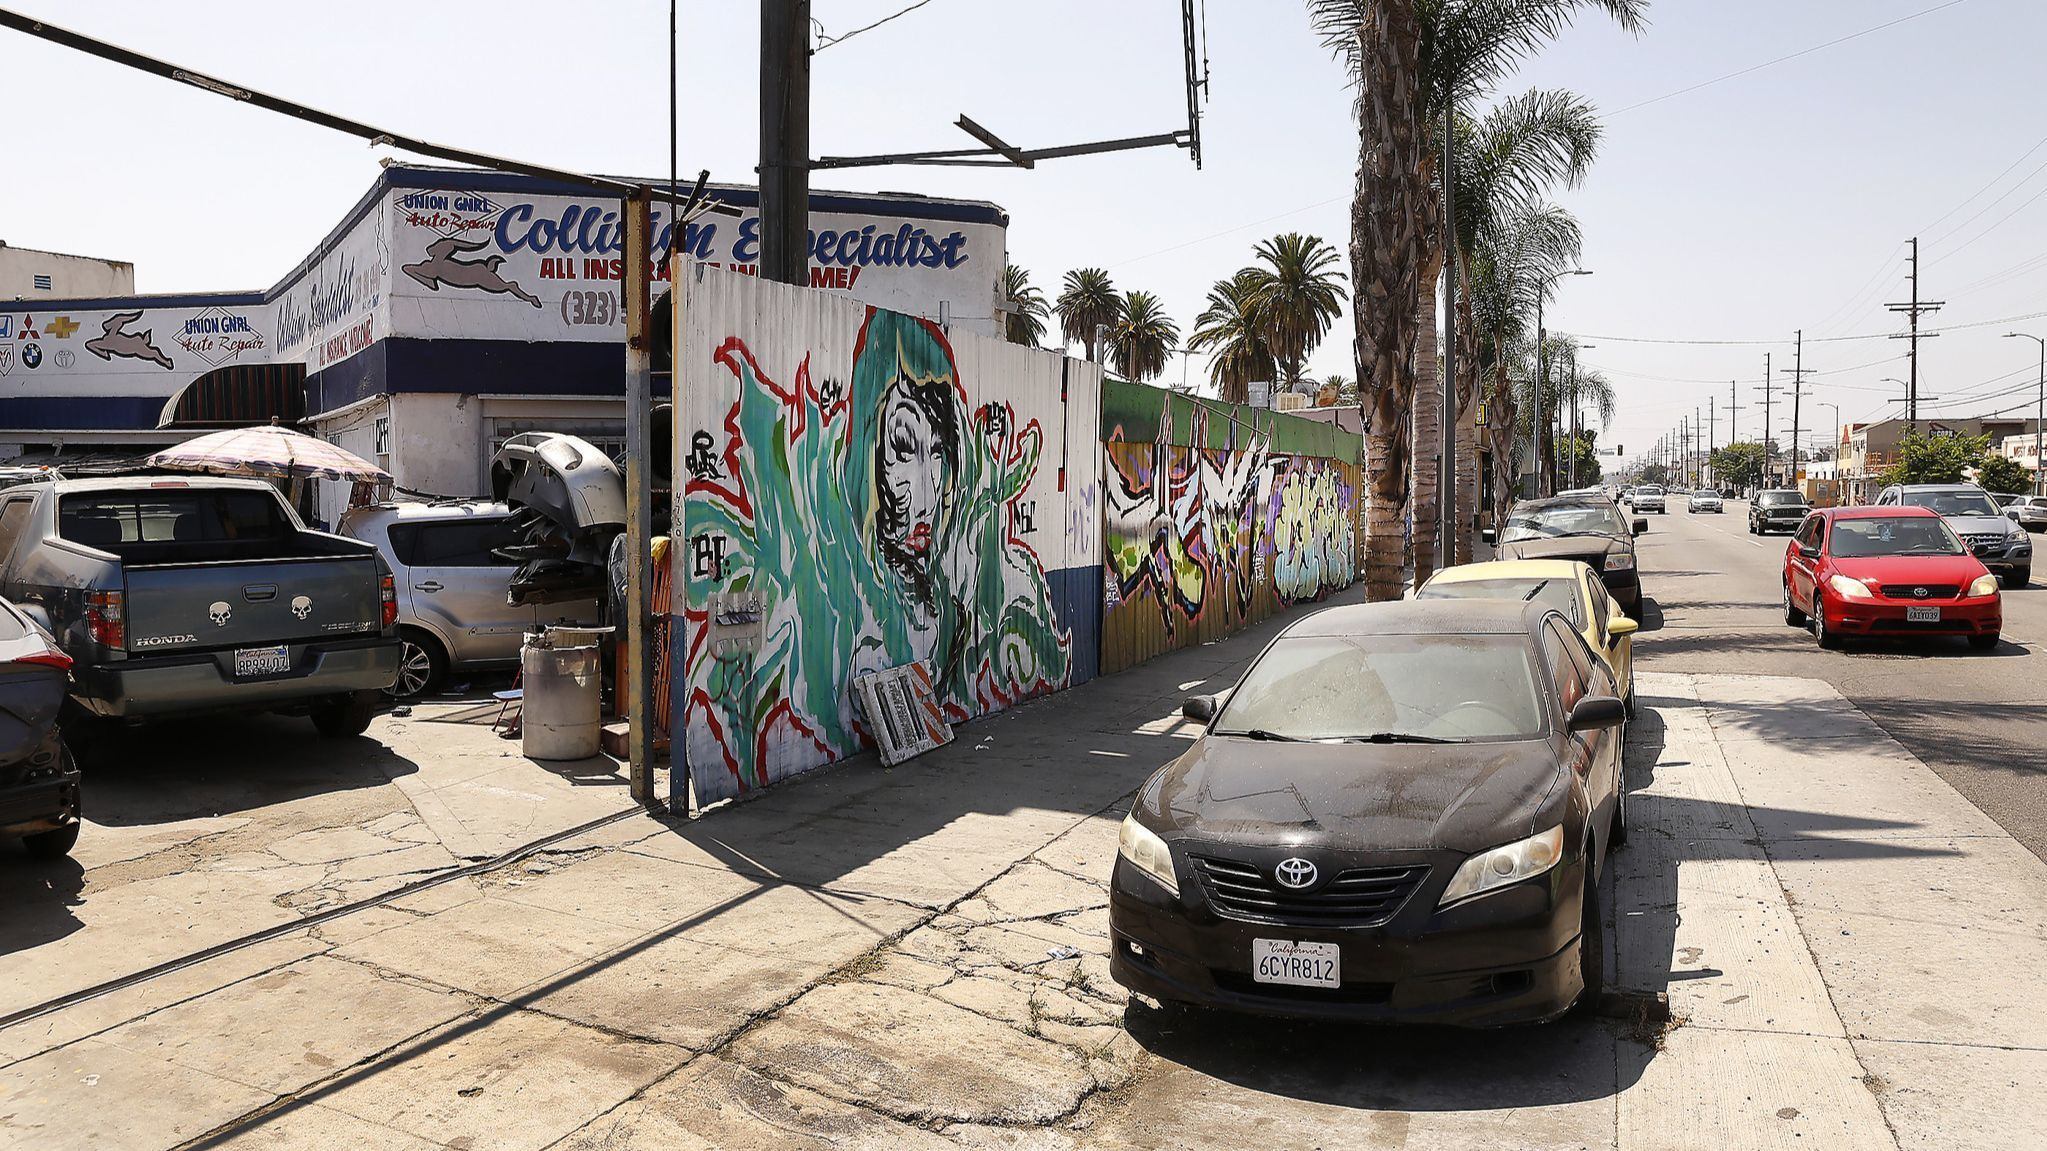 Junk, blight and problem businesses: South L.A. residents fume over code enforcement